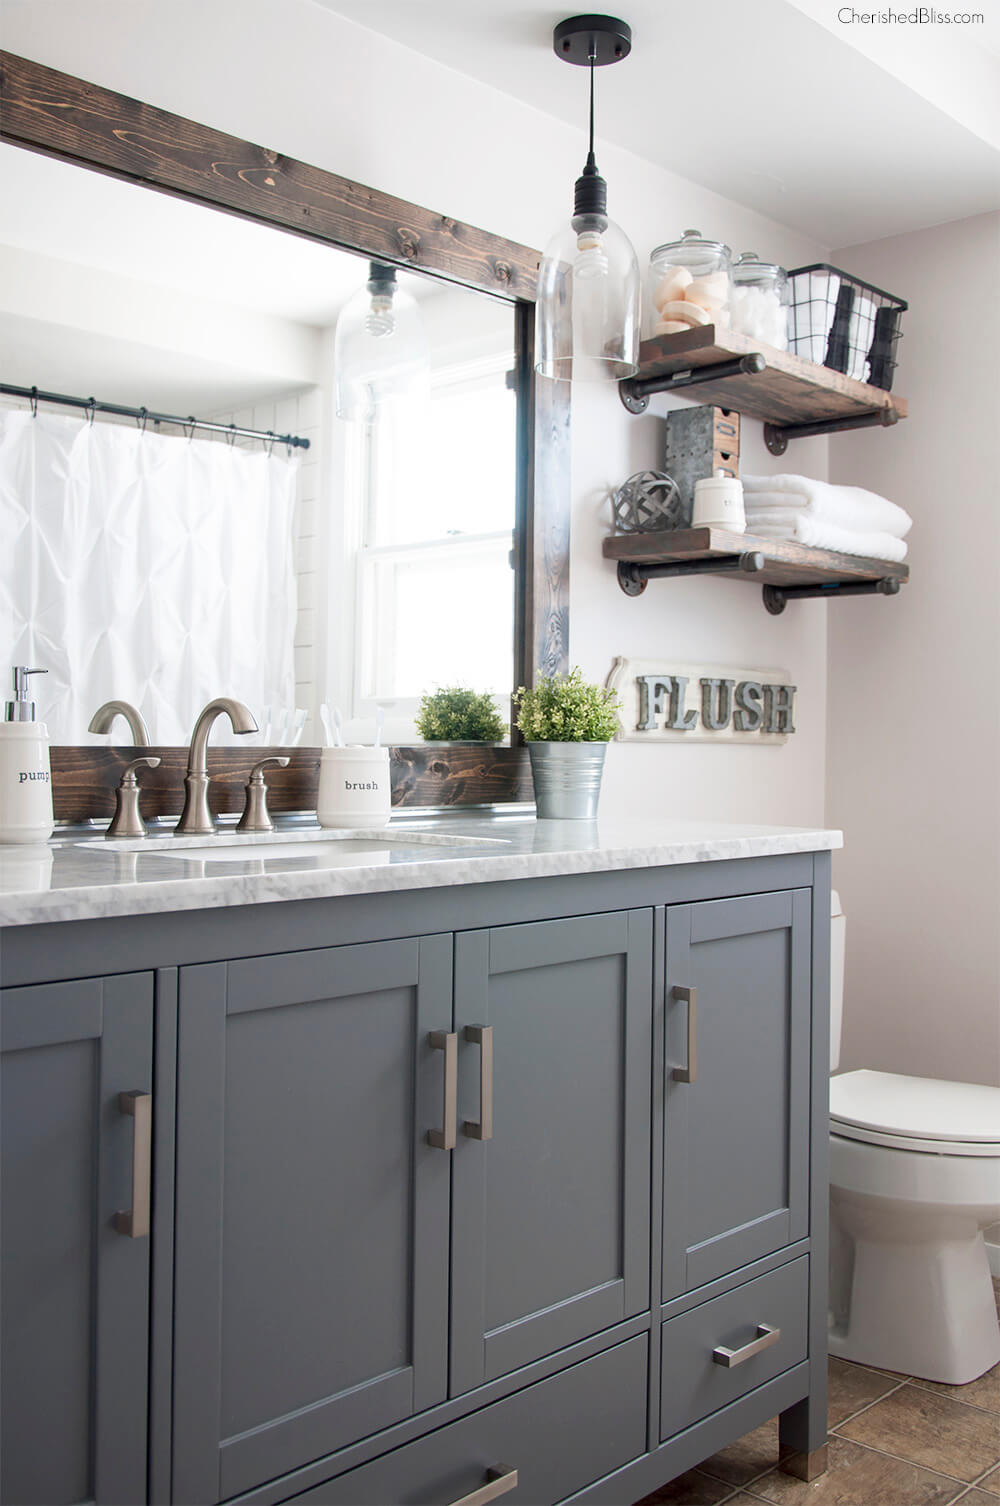 Town(house) and Country Pallet Projects For Your Bathroom